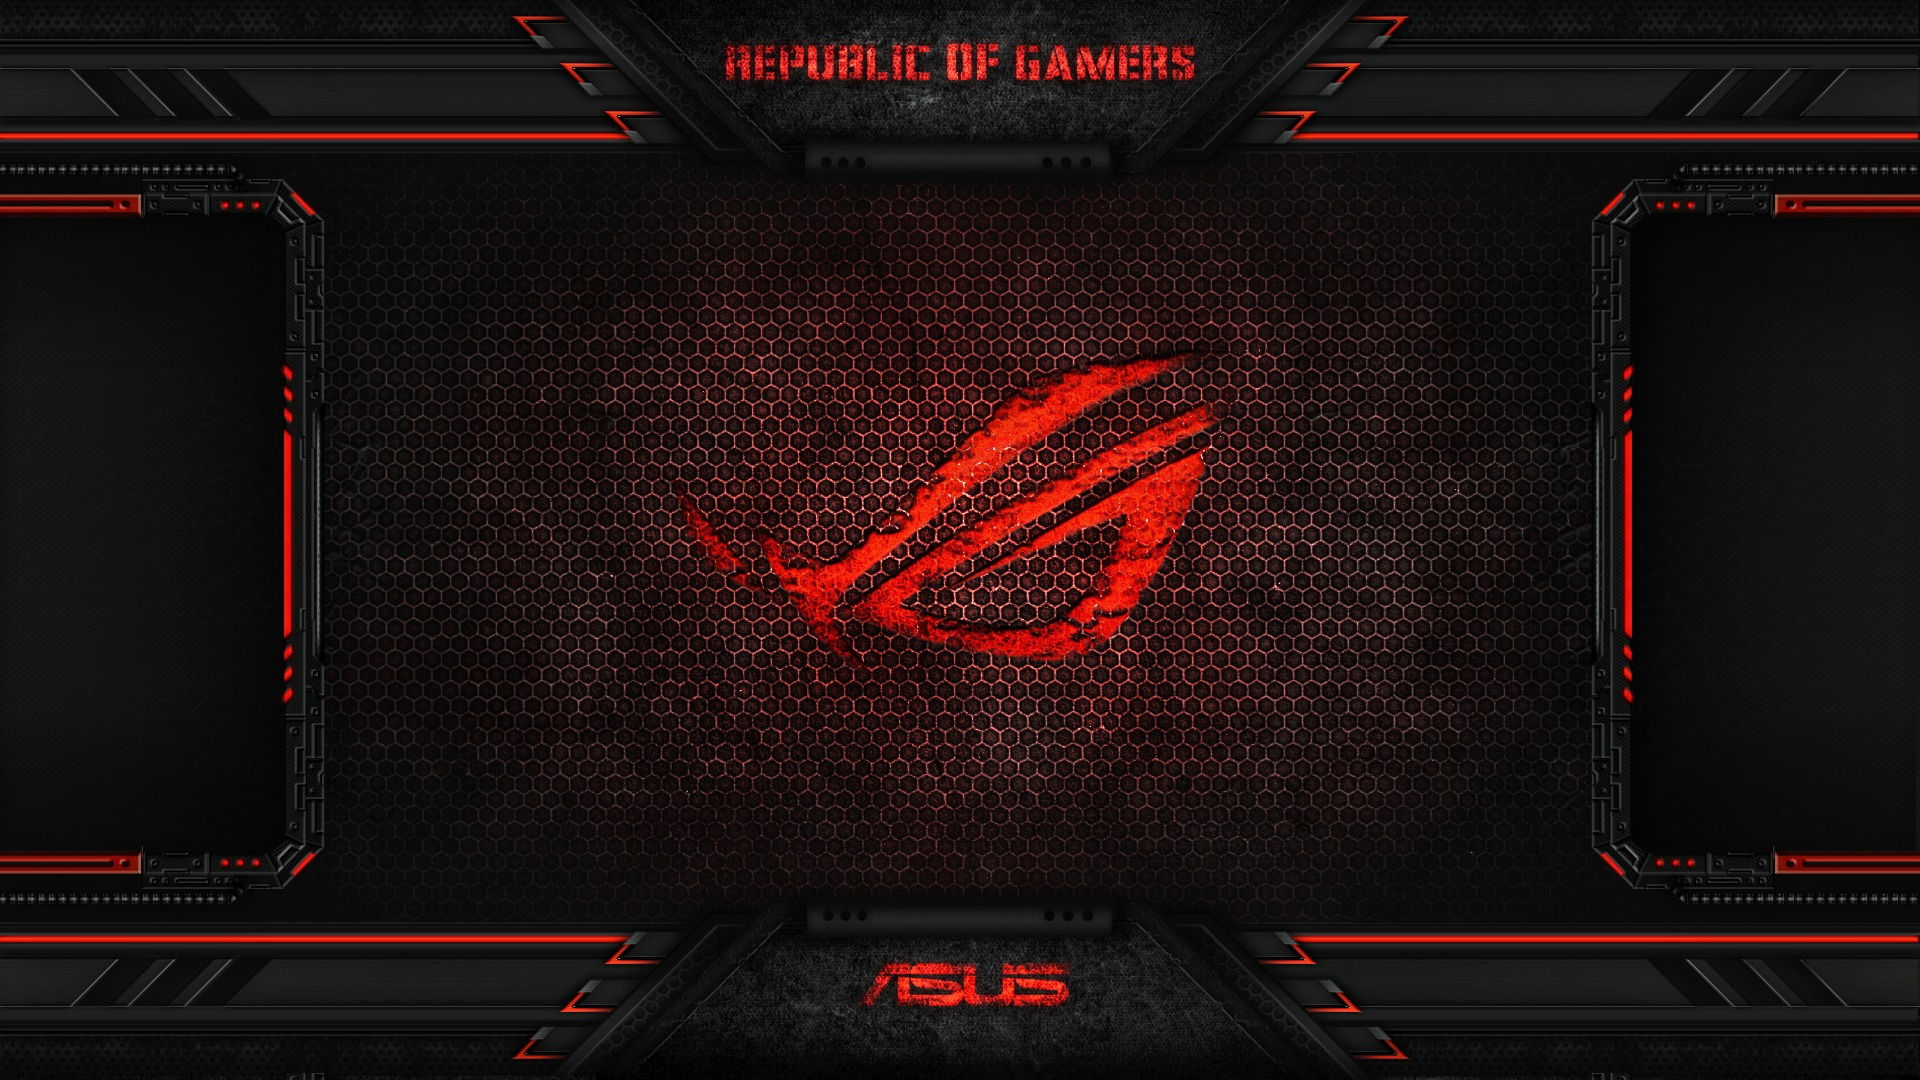 asus red tecnology wallpaper - photo #5